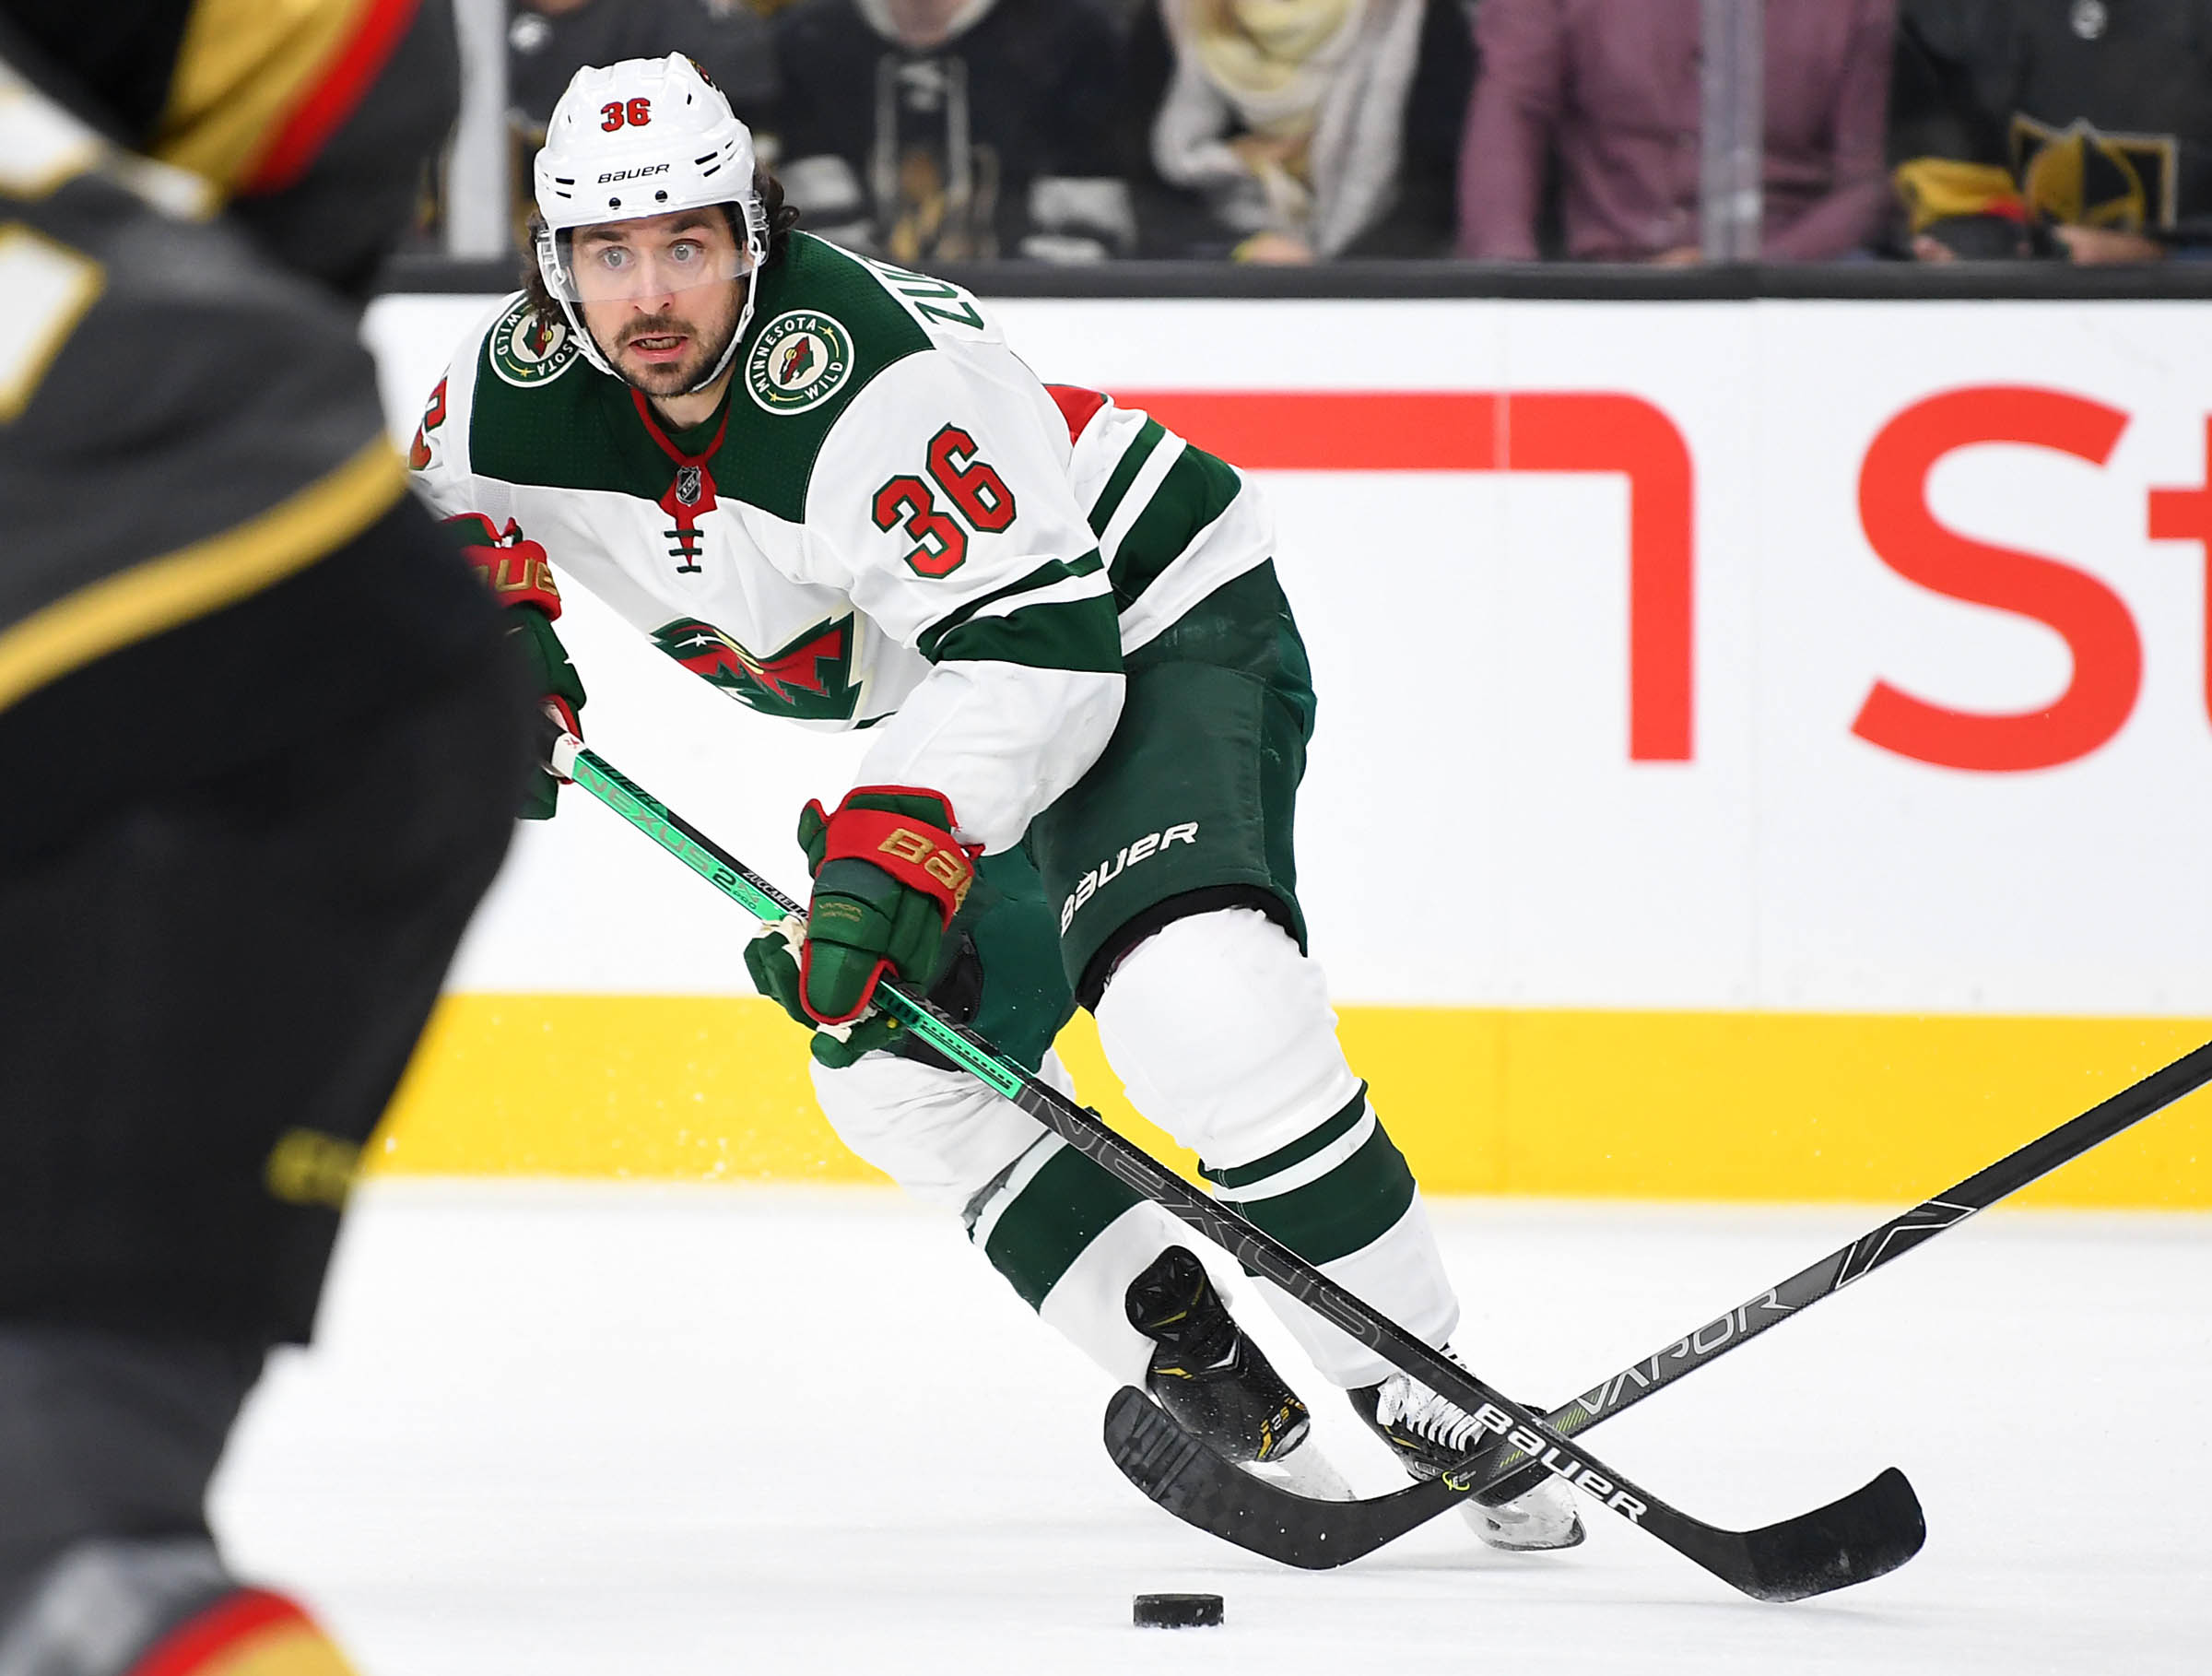 Game Preview: Minnesota Wild vs. Vegas Golden Knights 3/1/21 @ 8:00PM CST at T-Mobile Arena